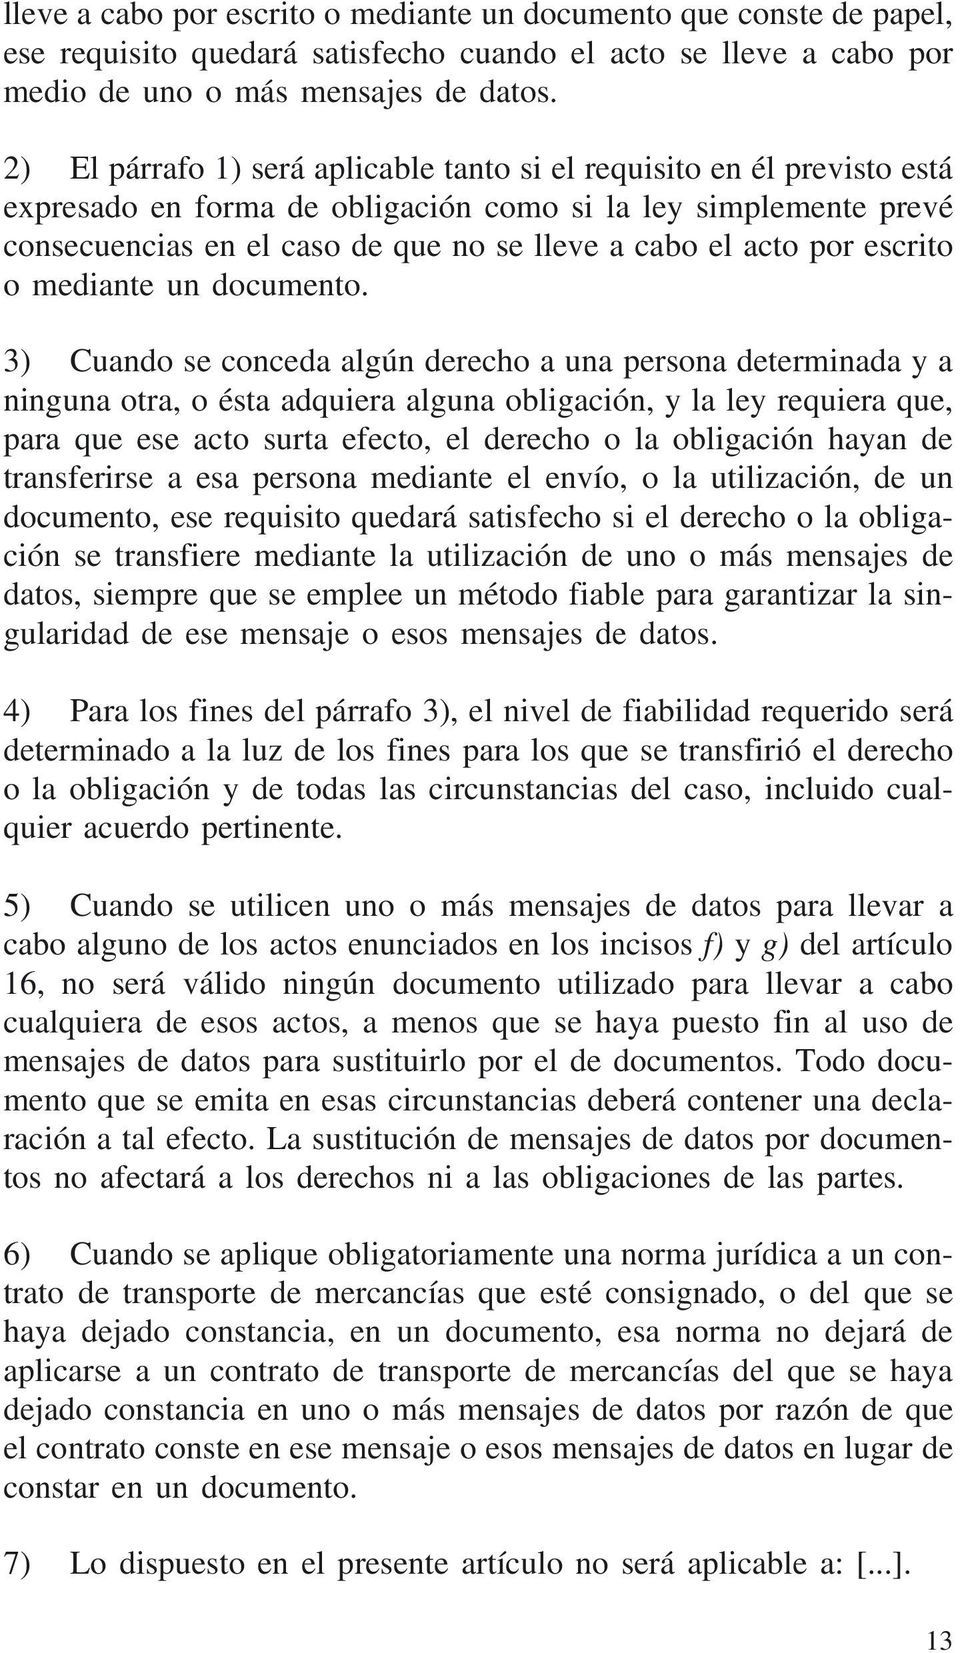 por escrito o mediante un documento.